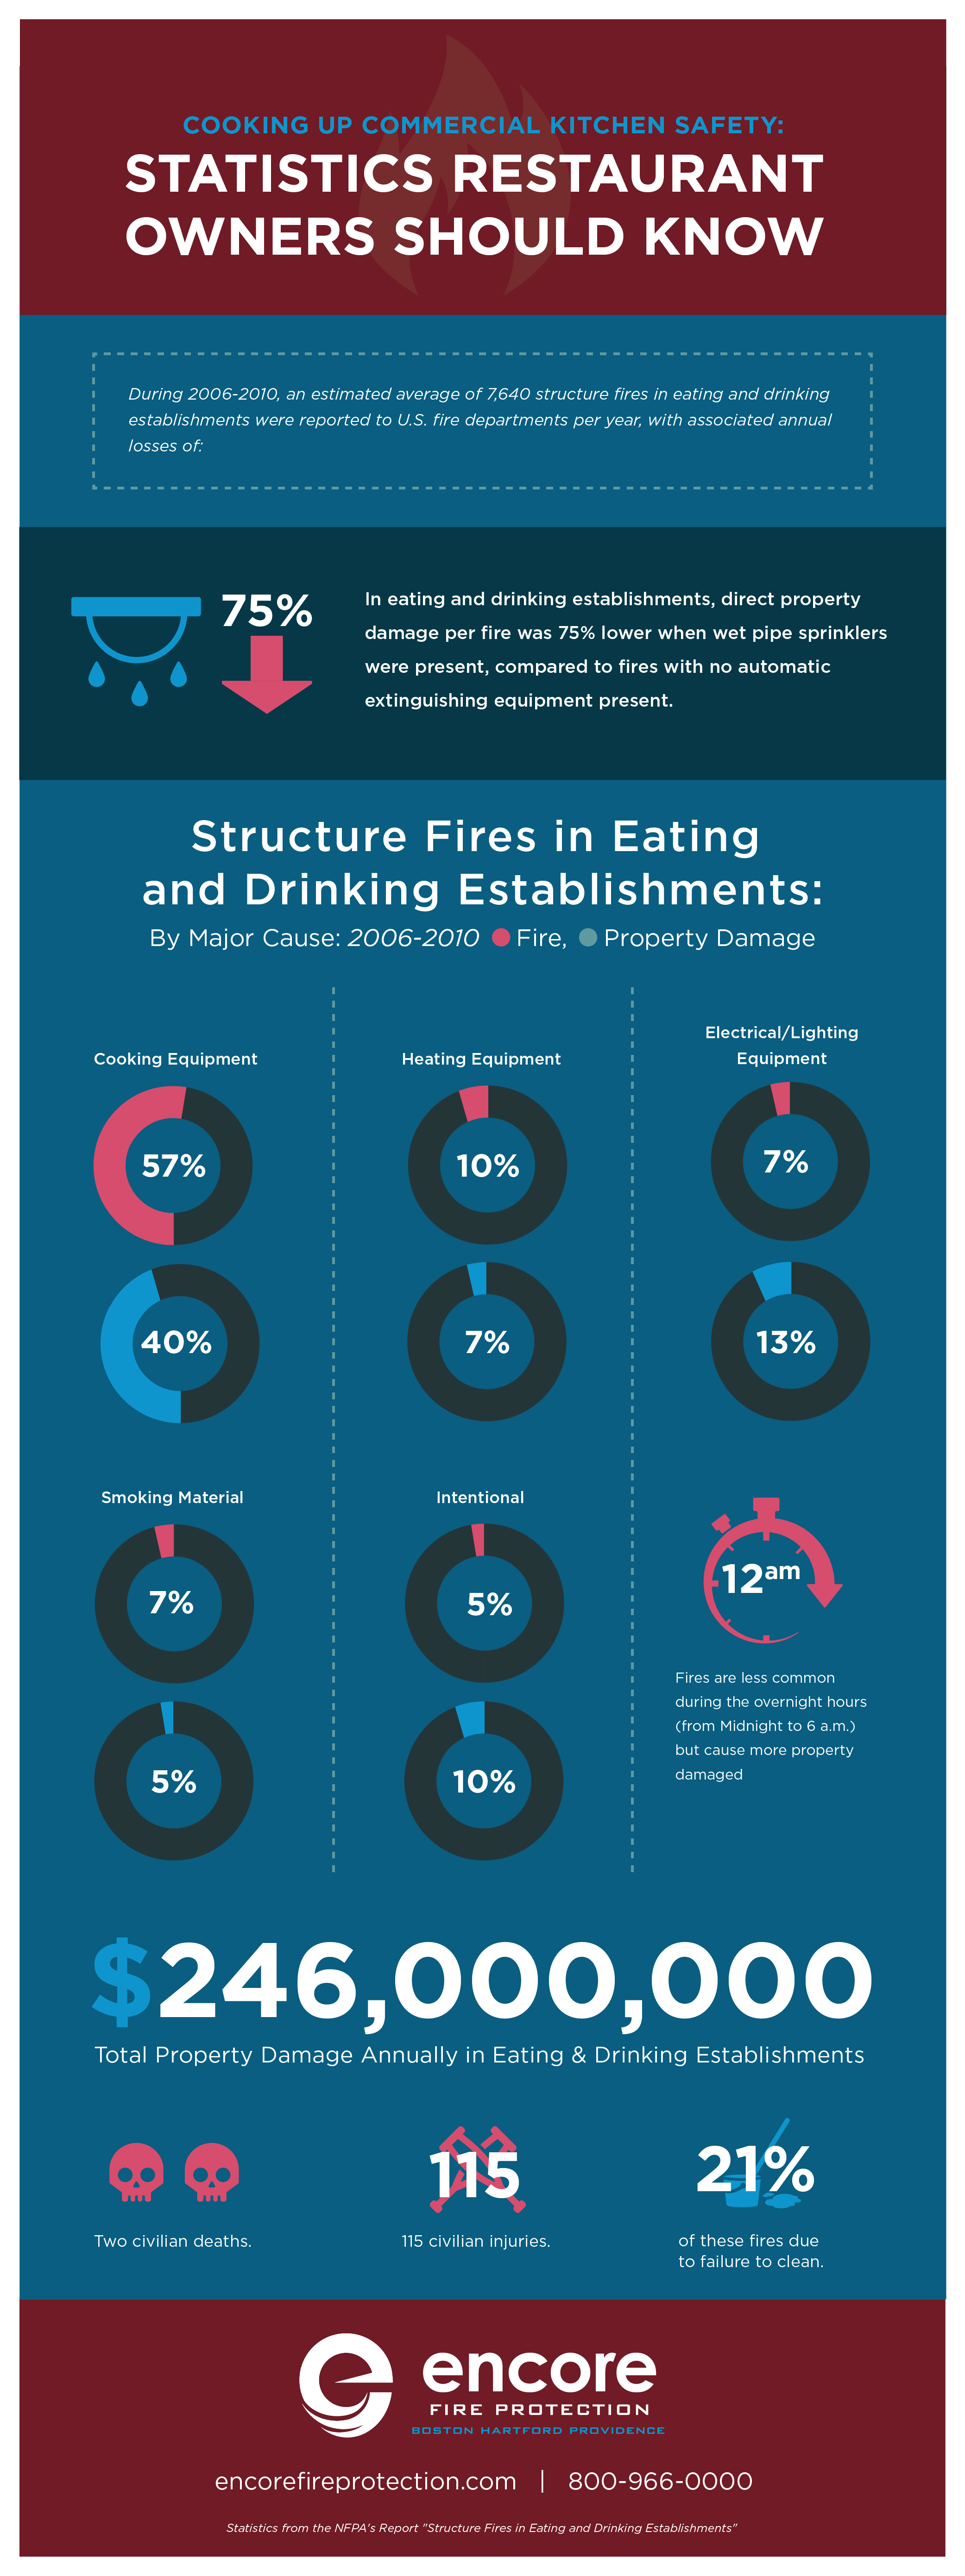 Commercial Kitchen Fire Safety: Statistics for Restaurant Owners